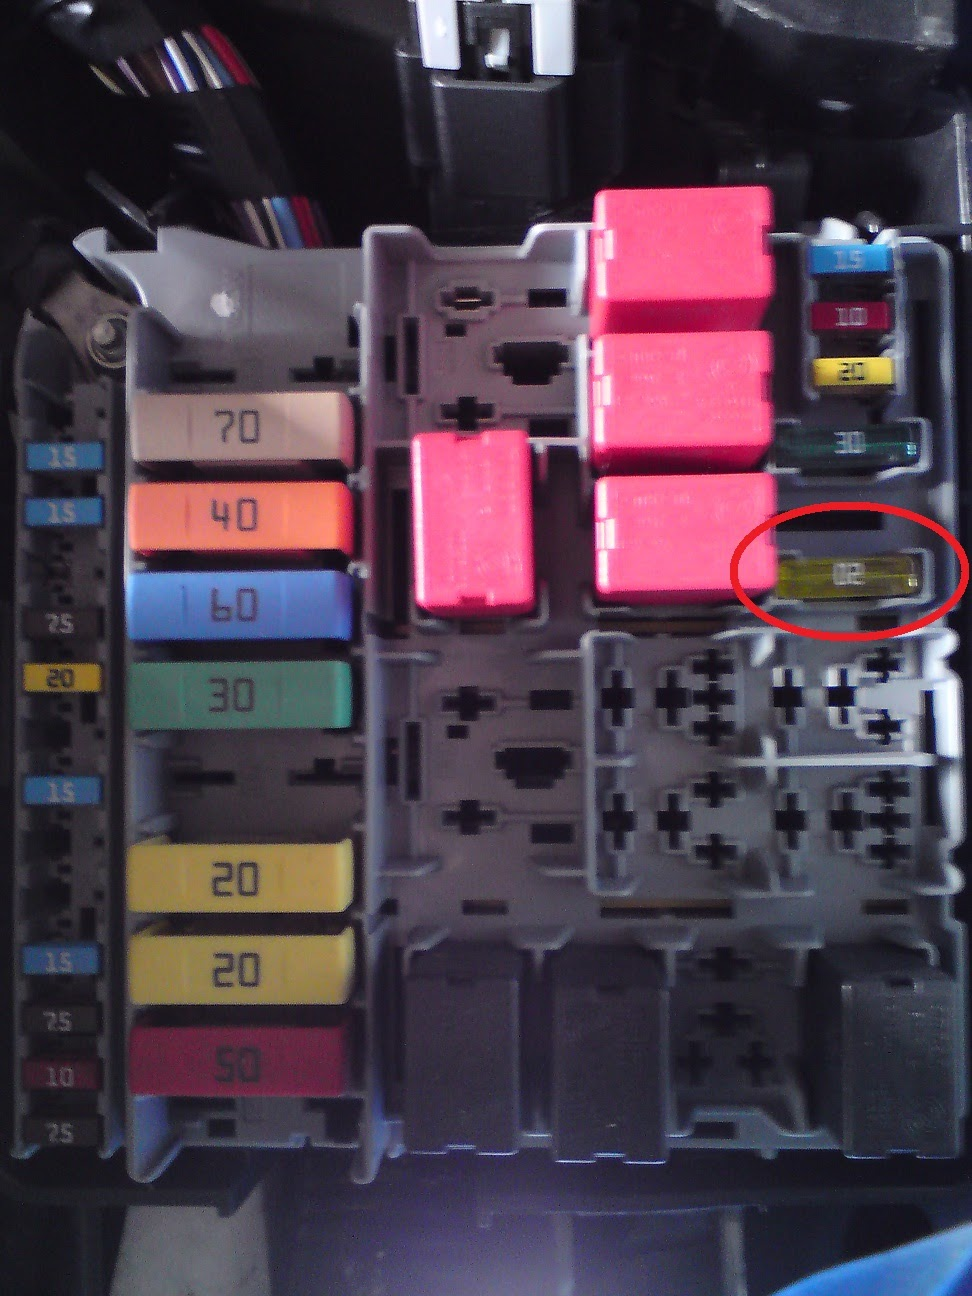 EZ_0287] Fiat Bravo Fuse Box Location Free DiagramAnth Proe Tzici Ungo Awni Eopsy Peted Oidei Vira Mohammedshrine Librar  Wiring 101